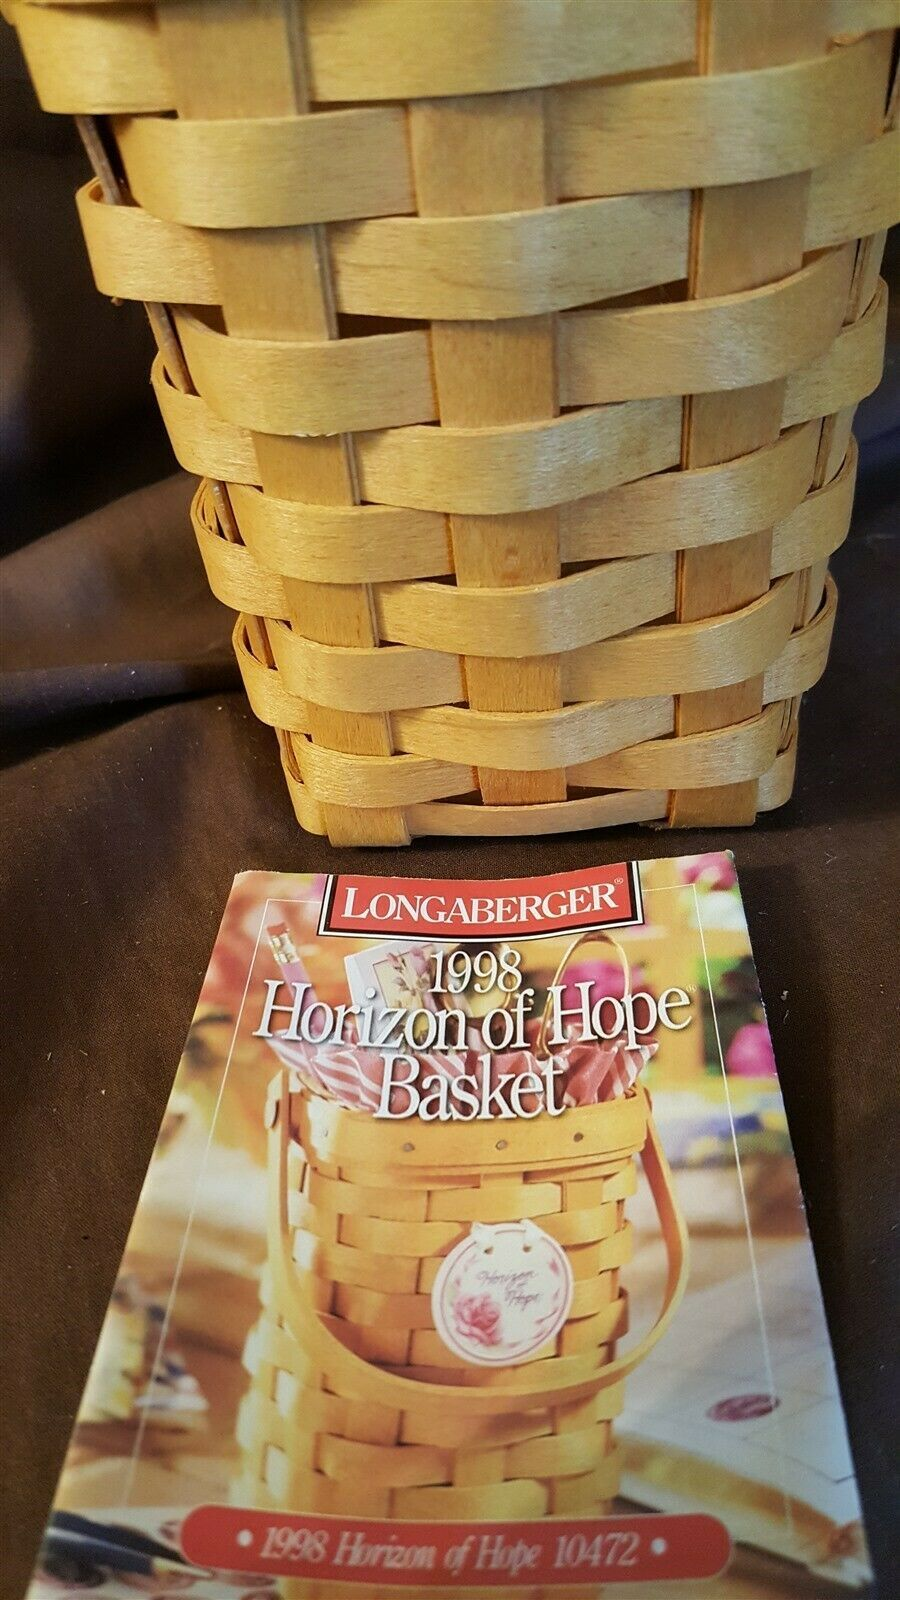 Longaberger 1998 HORIZON OF HOPE Basket Breast Cancer Awareness With Protector